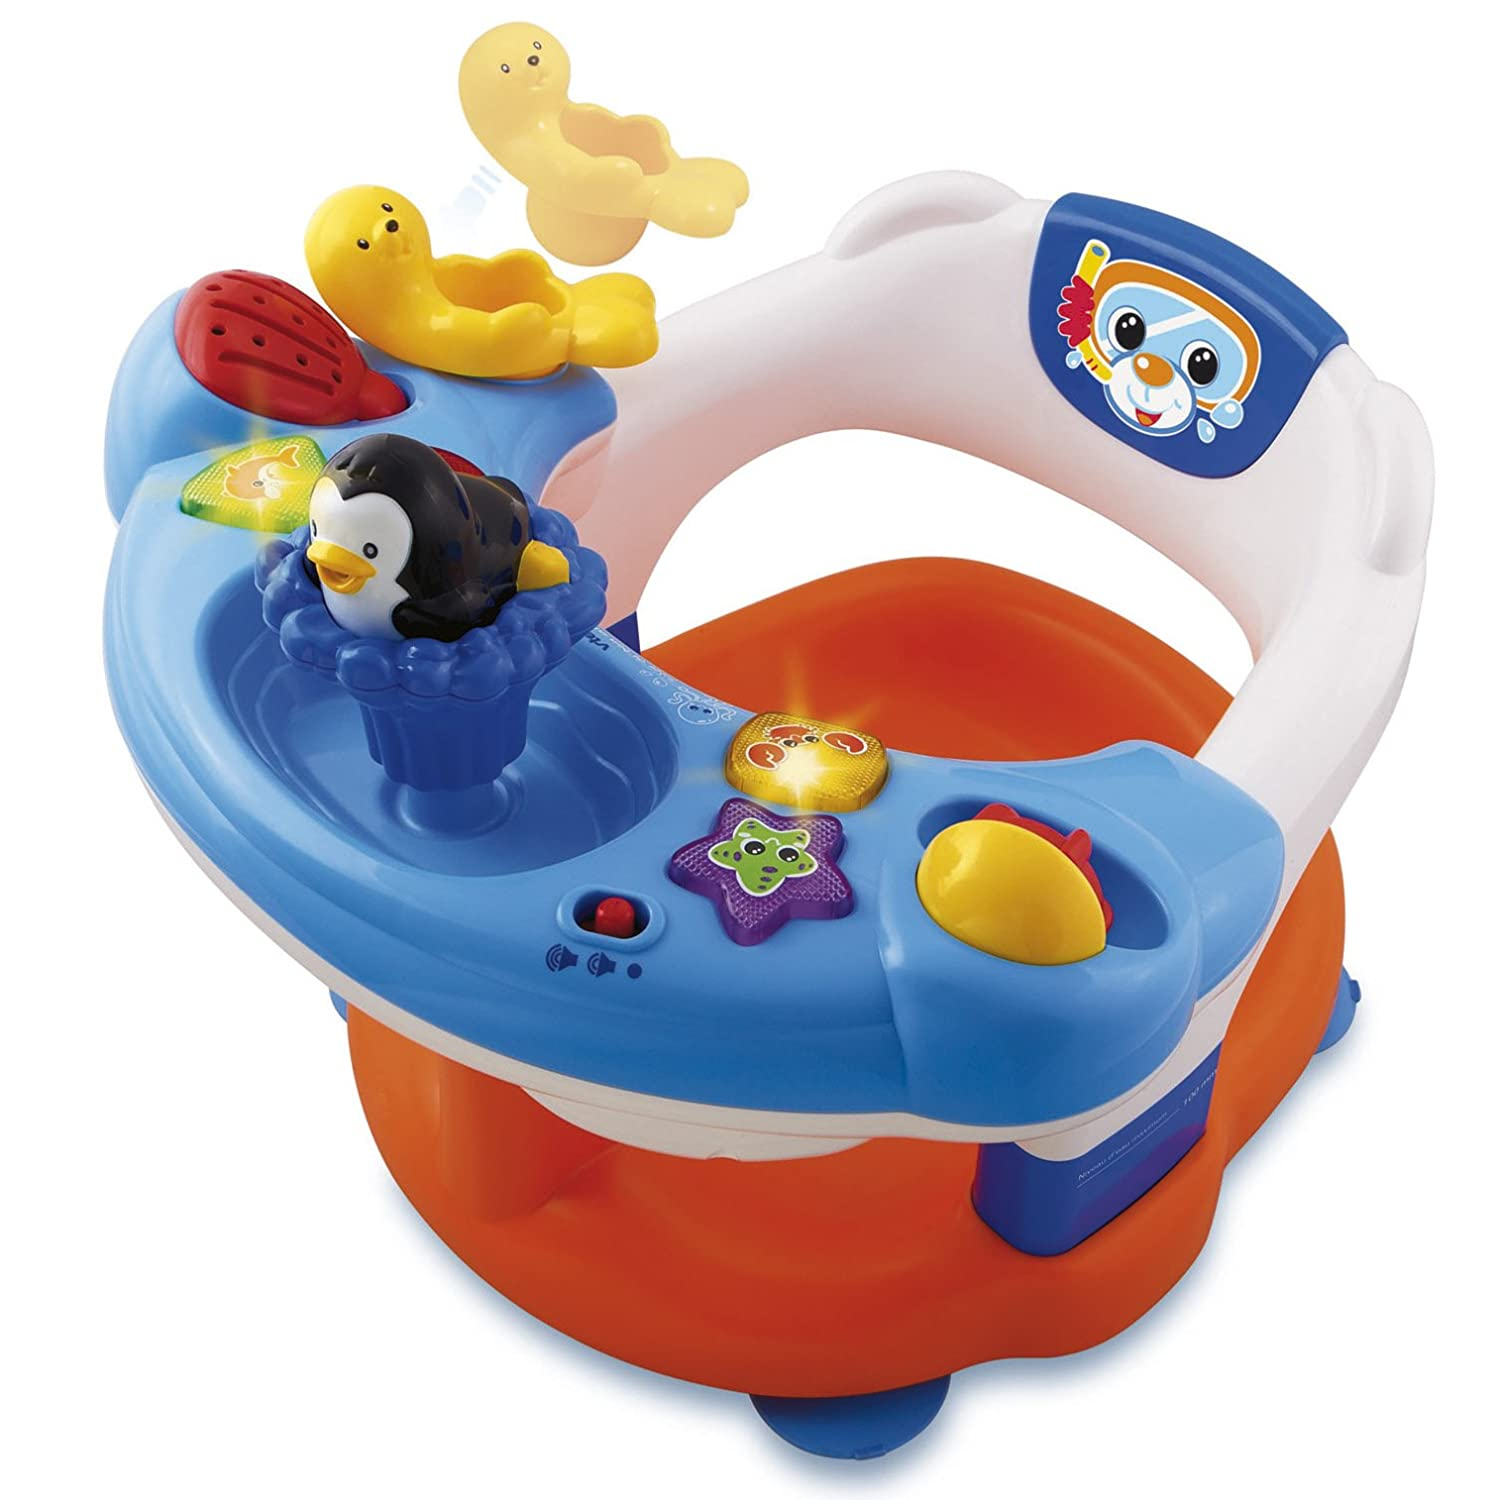 Amazon.com : Vtech 113705 2 in 1 Splashing Fun Bath Seat : Baby